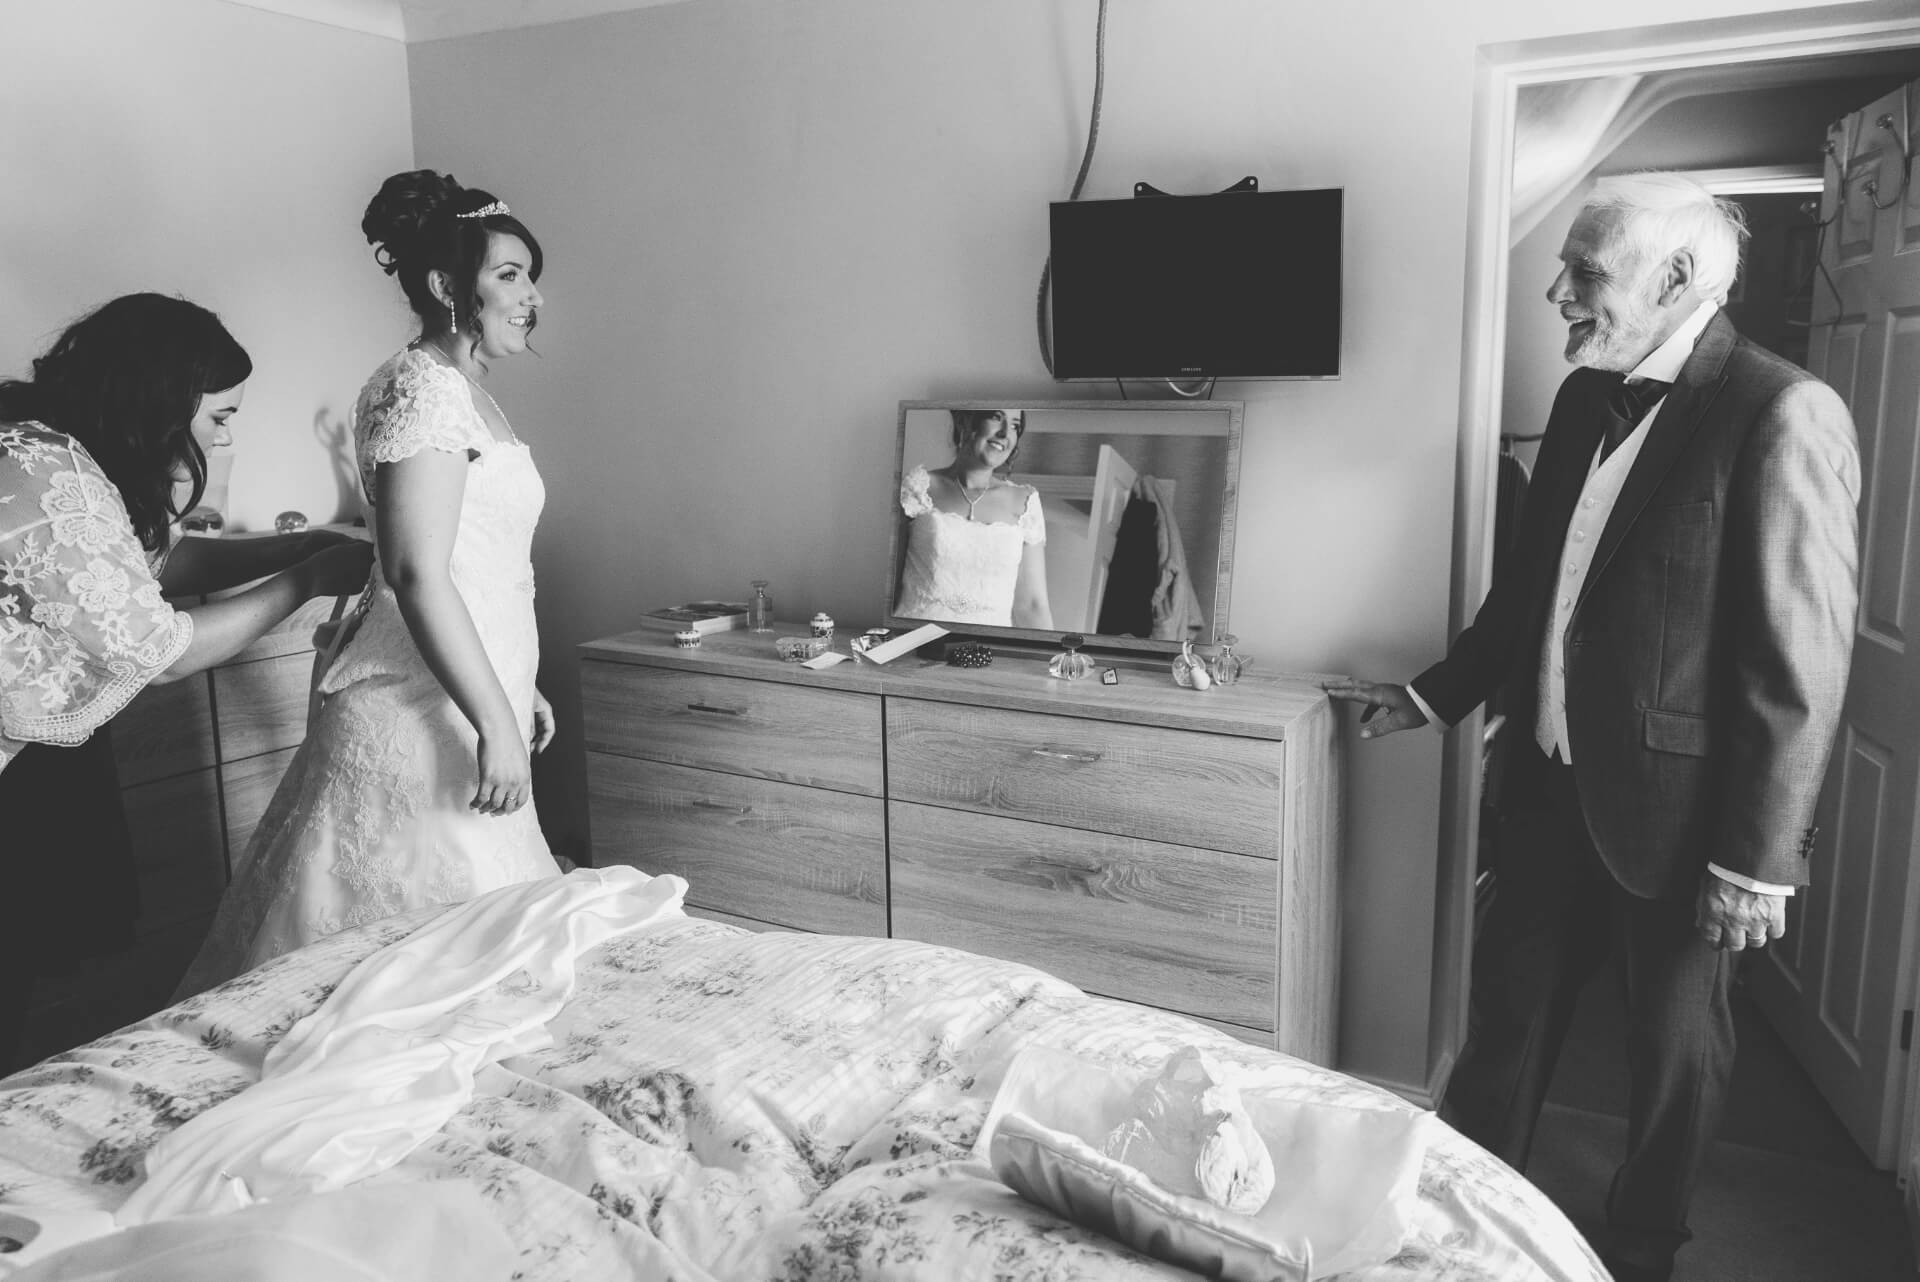 Bridal preparation - First glimpse of the bride by her father - Black and White Reportage wedding photos by Lincolnshire wedding photographer, Slice of Life Photography